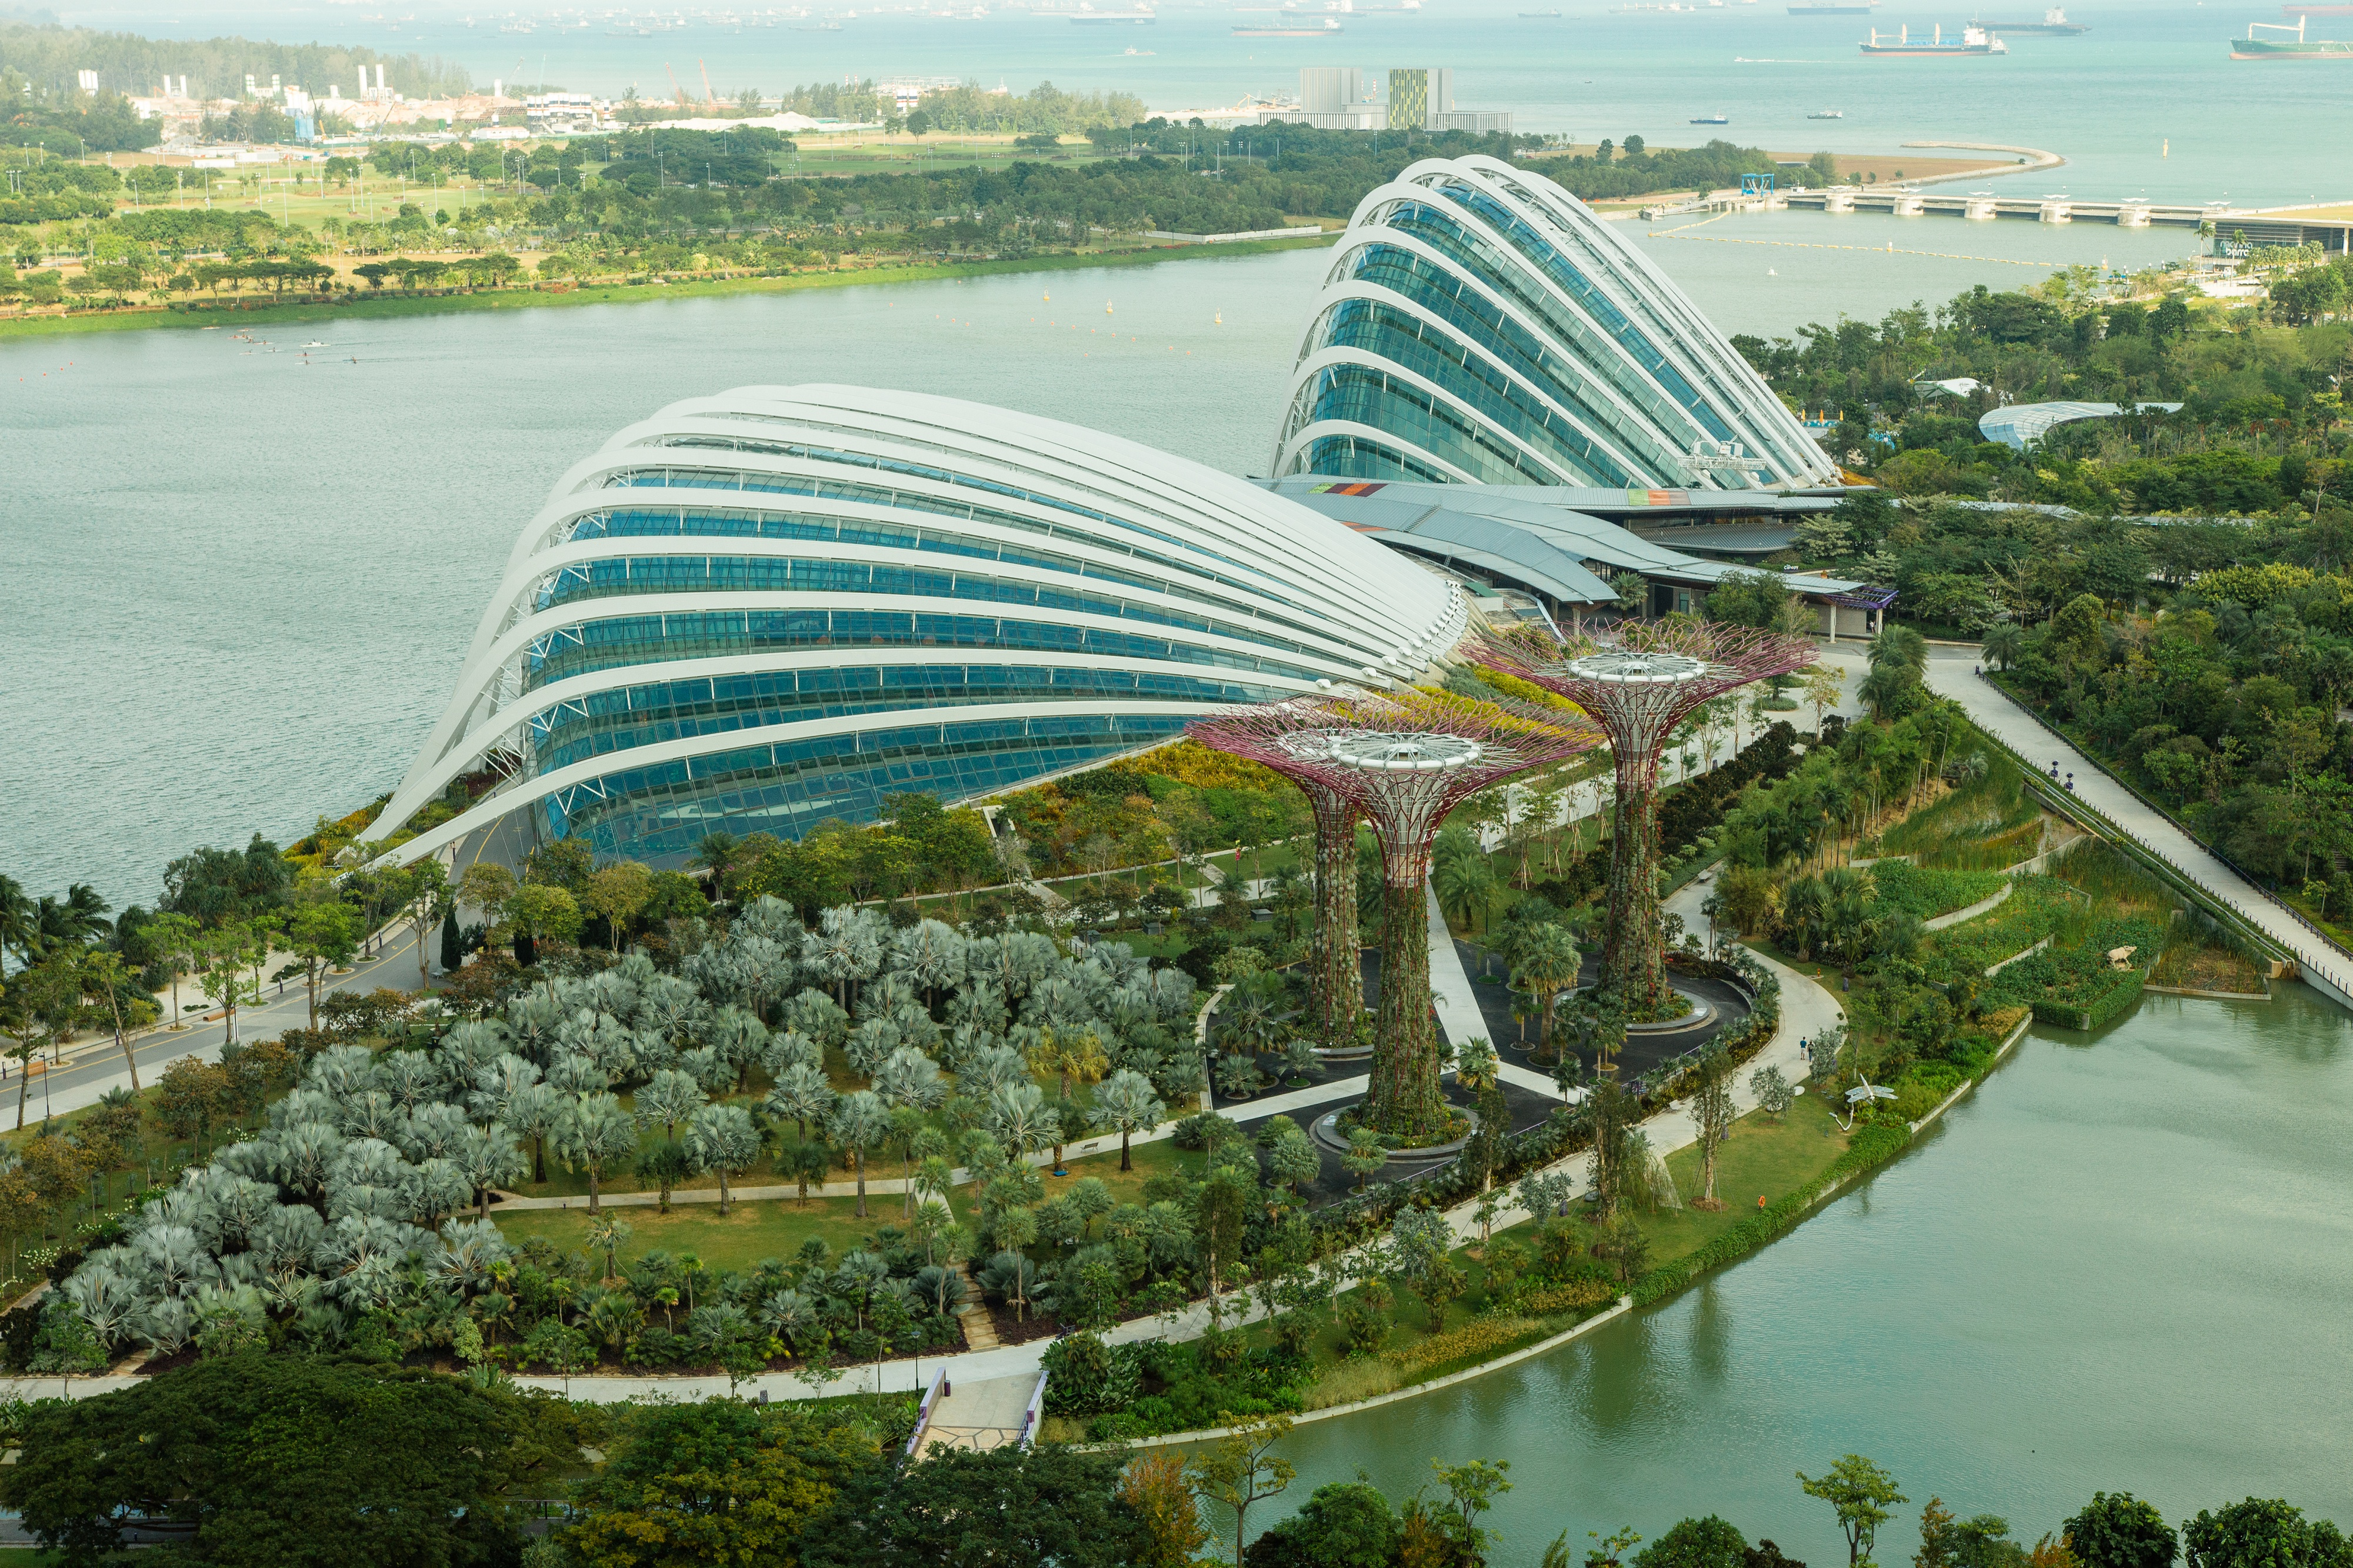 gardens by the bay wedding venue in singapore bridestorycom - Garden By The Bay Flower Field Hall